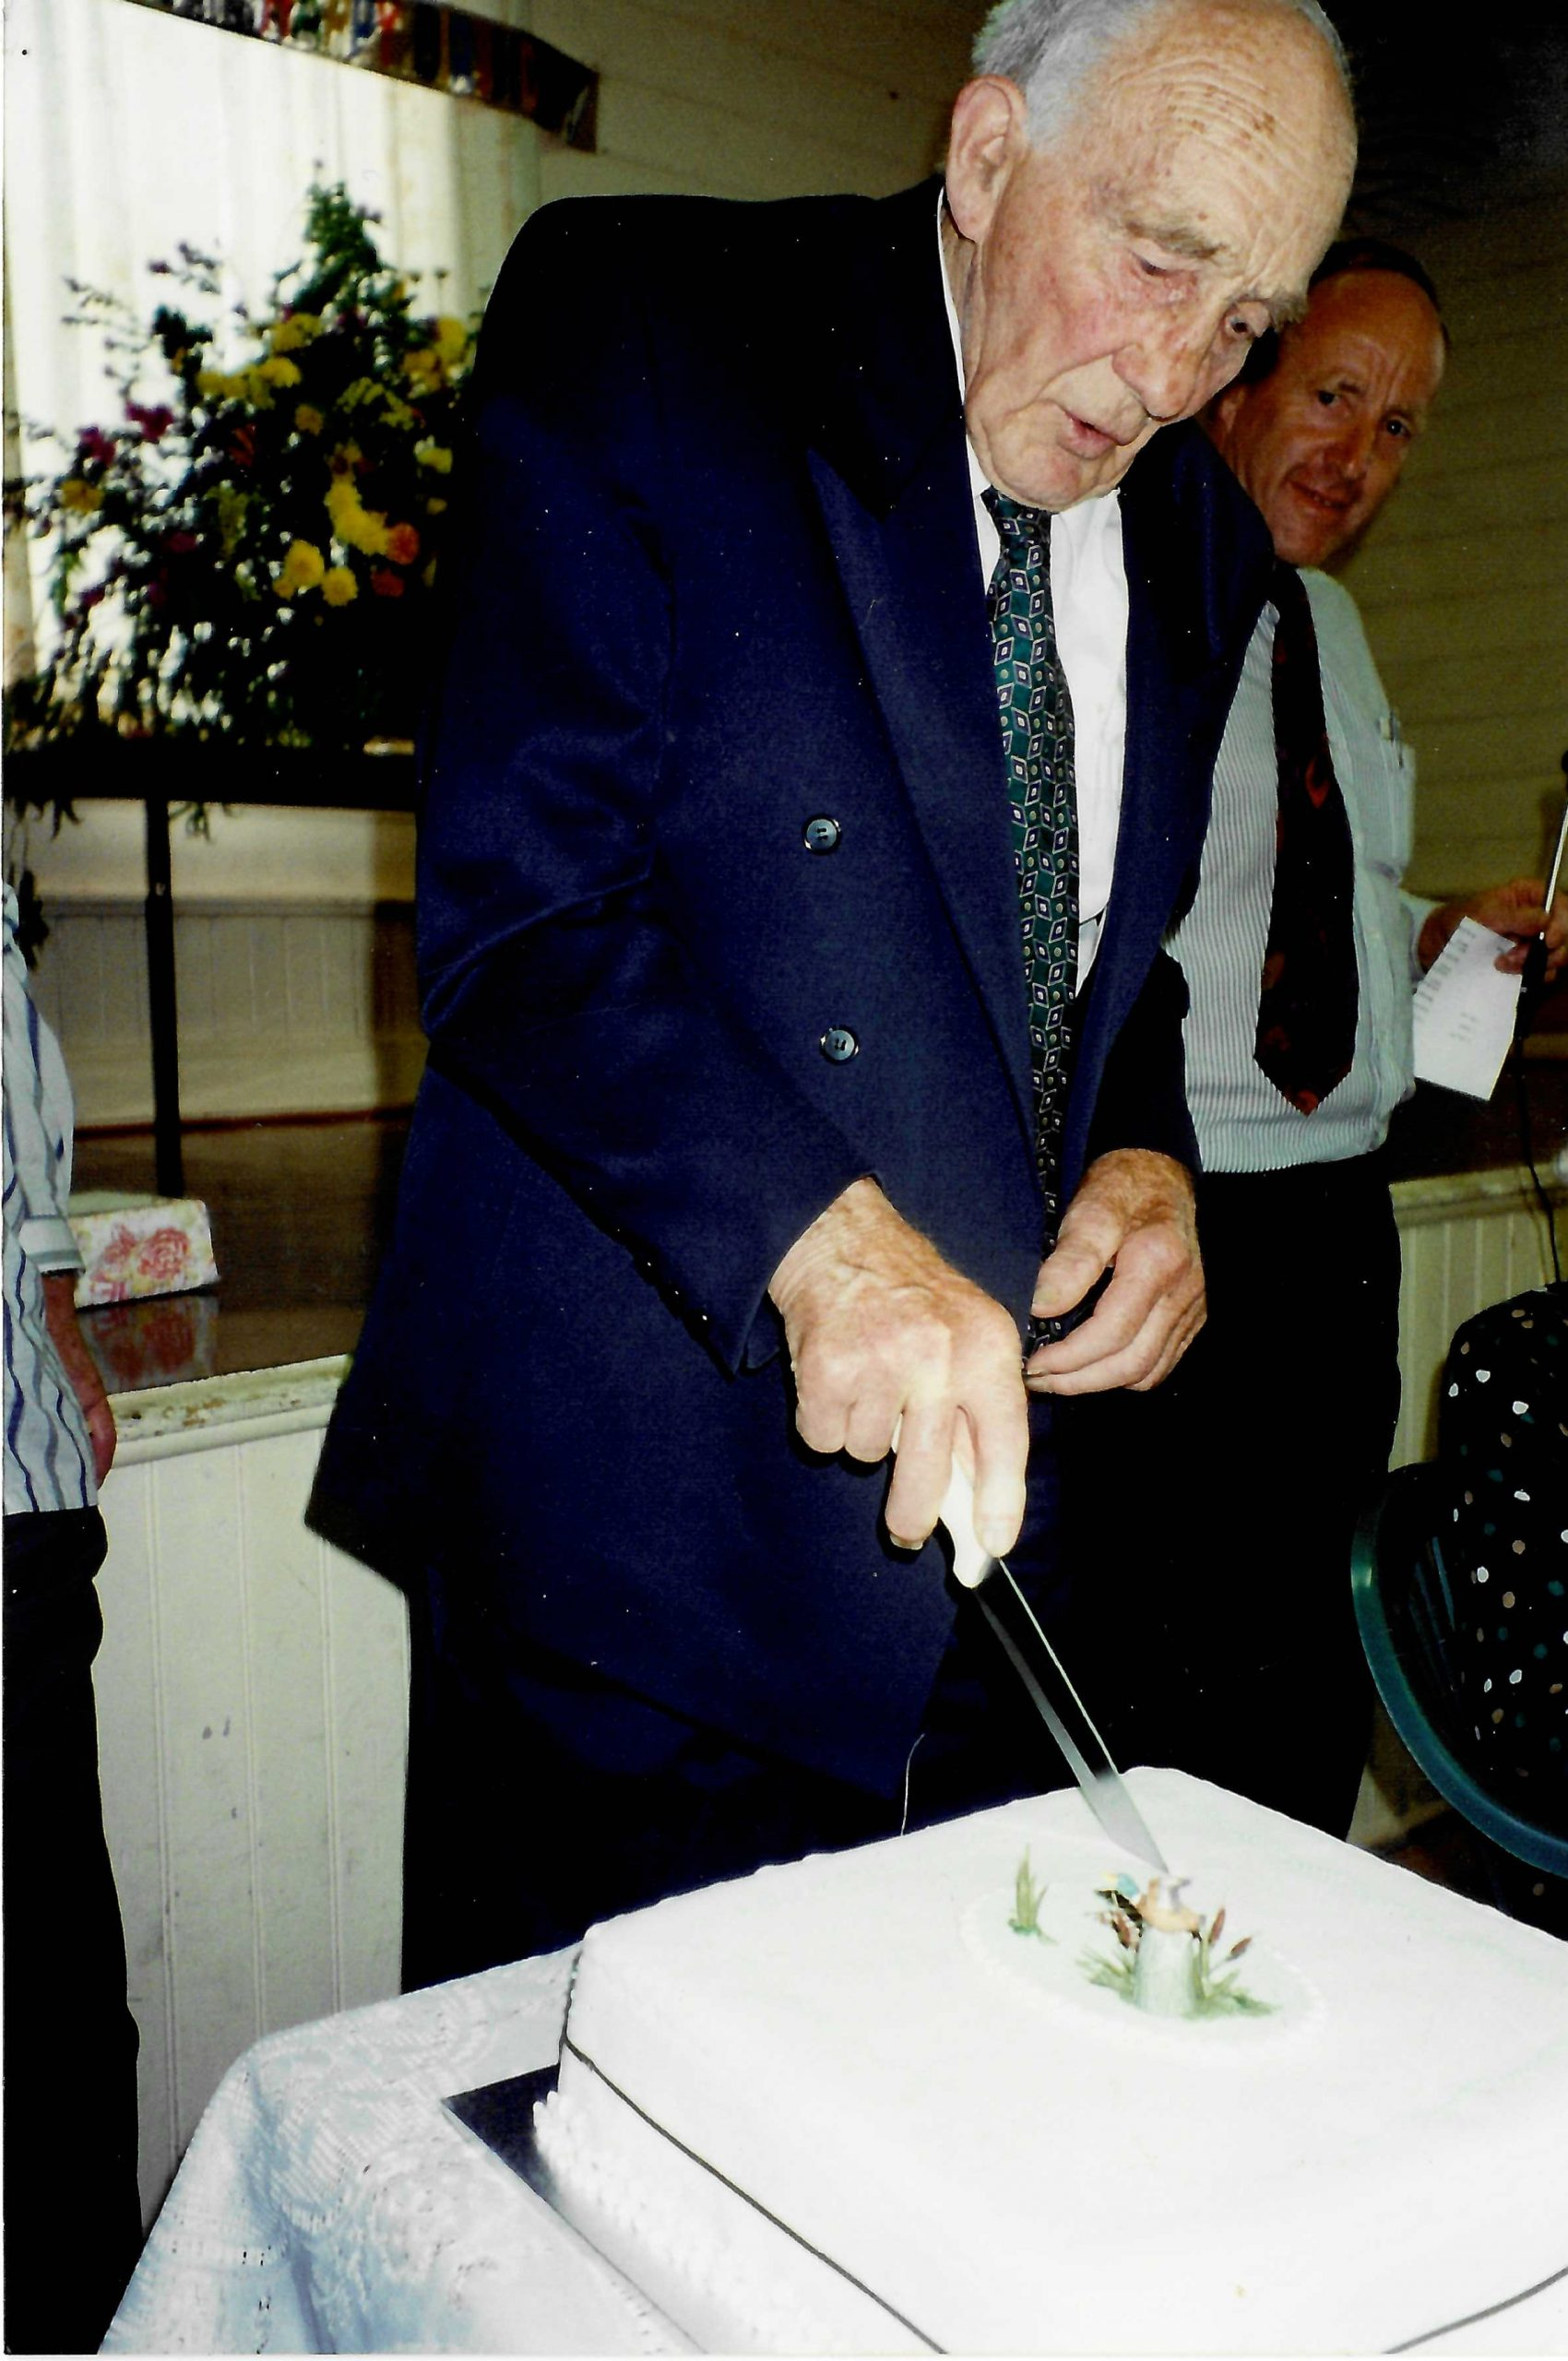 At his 90th Birthday celebration in 1995, held in the now demolished Doreen Hall, Jim Chester Draper received a watch and accompanying letter from the Country Fire Authority as thanks for his personal contribution to the service over the past fifty years